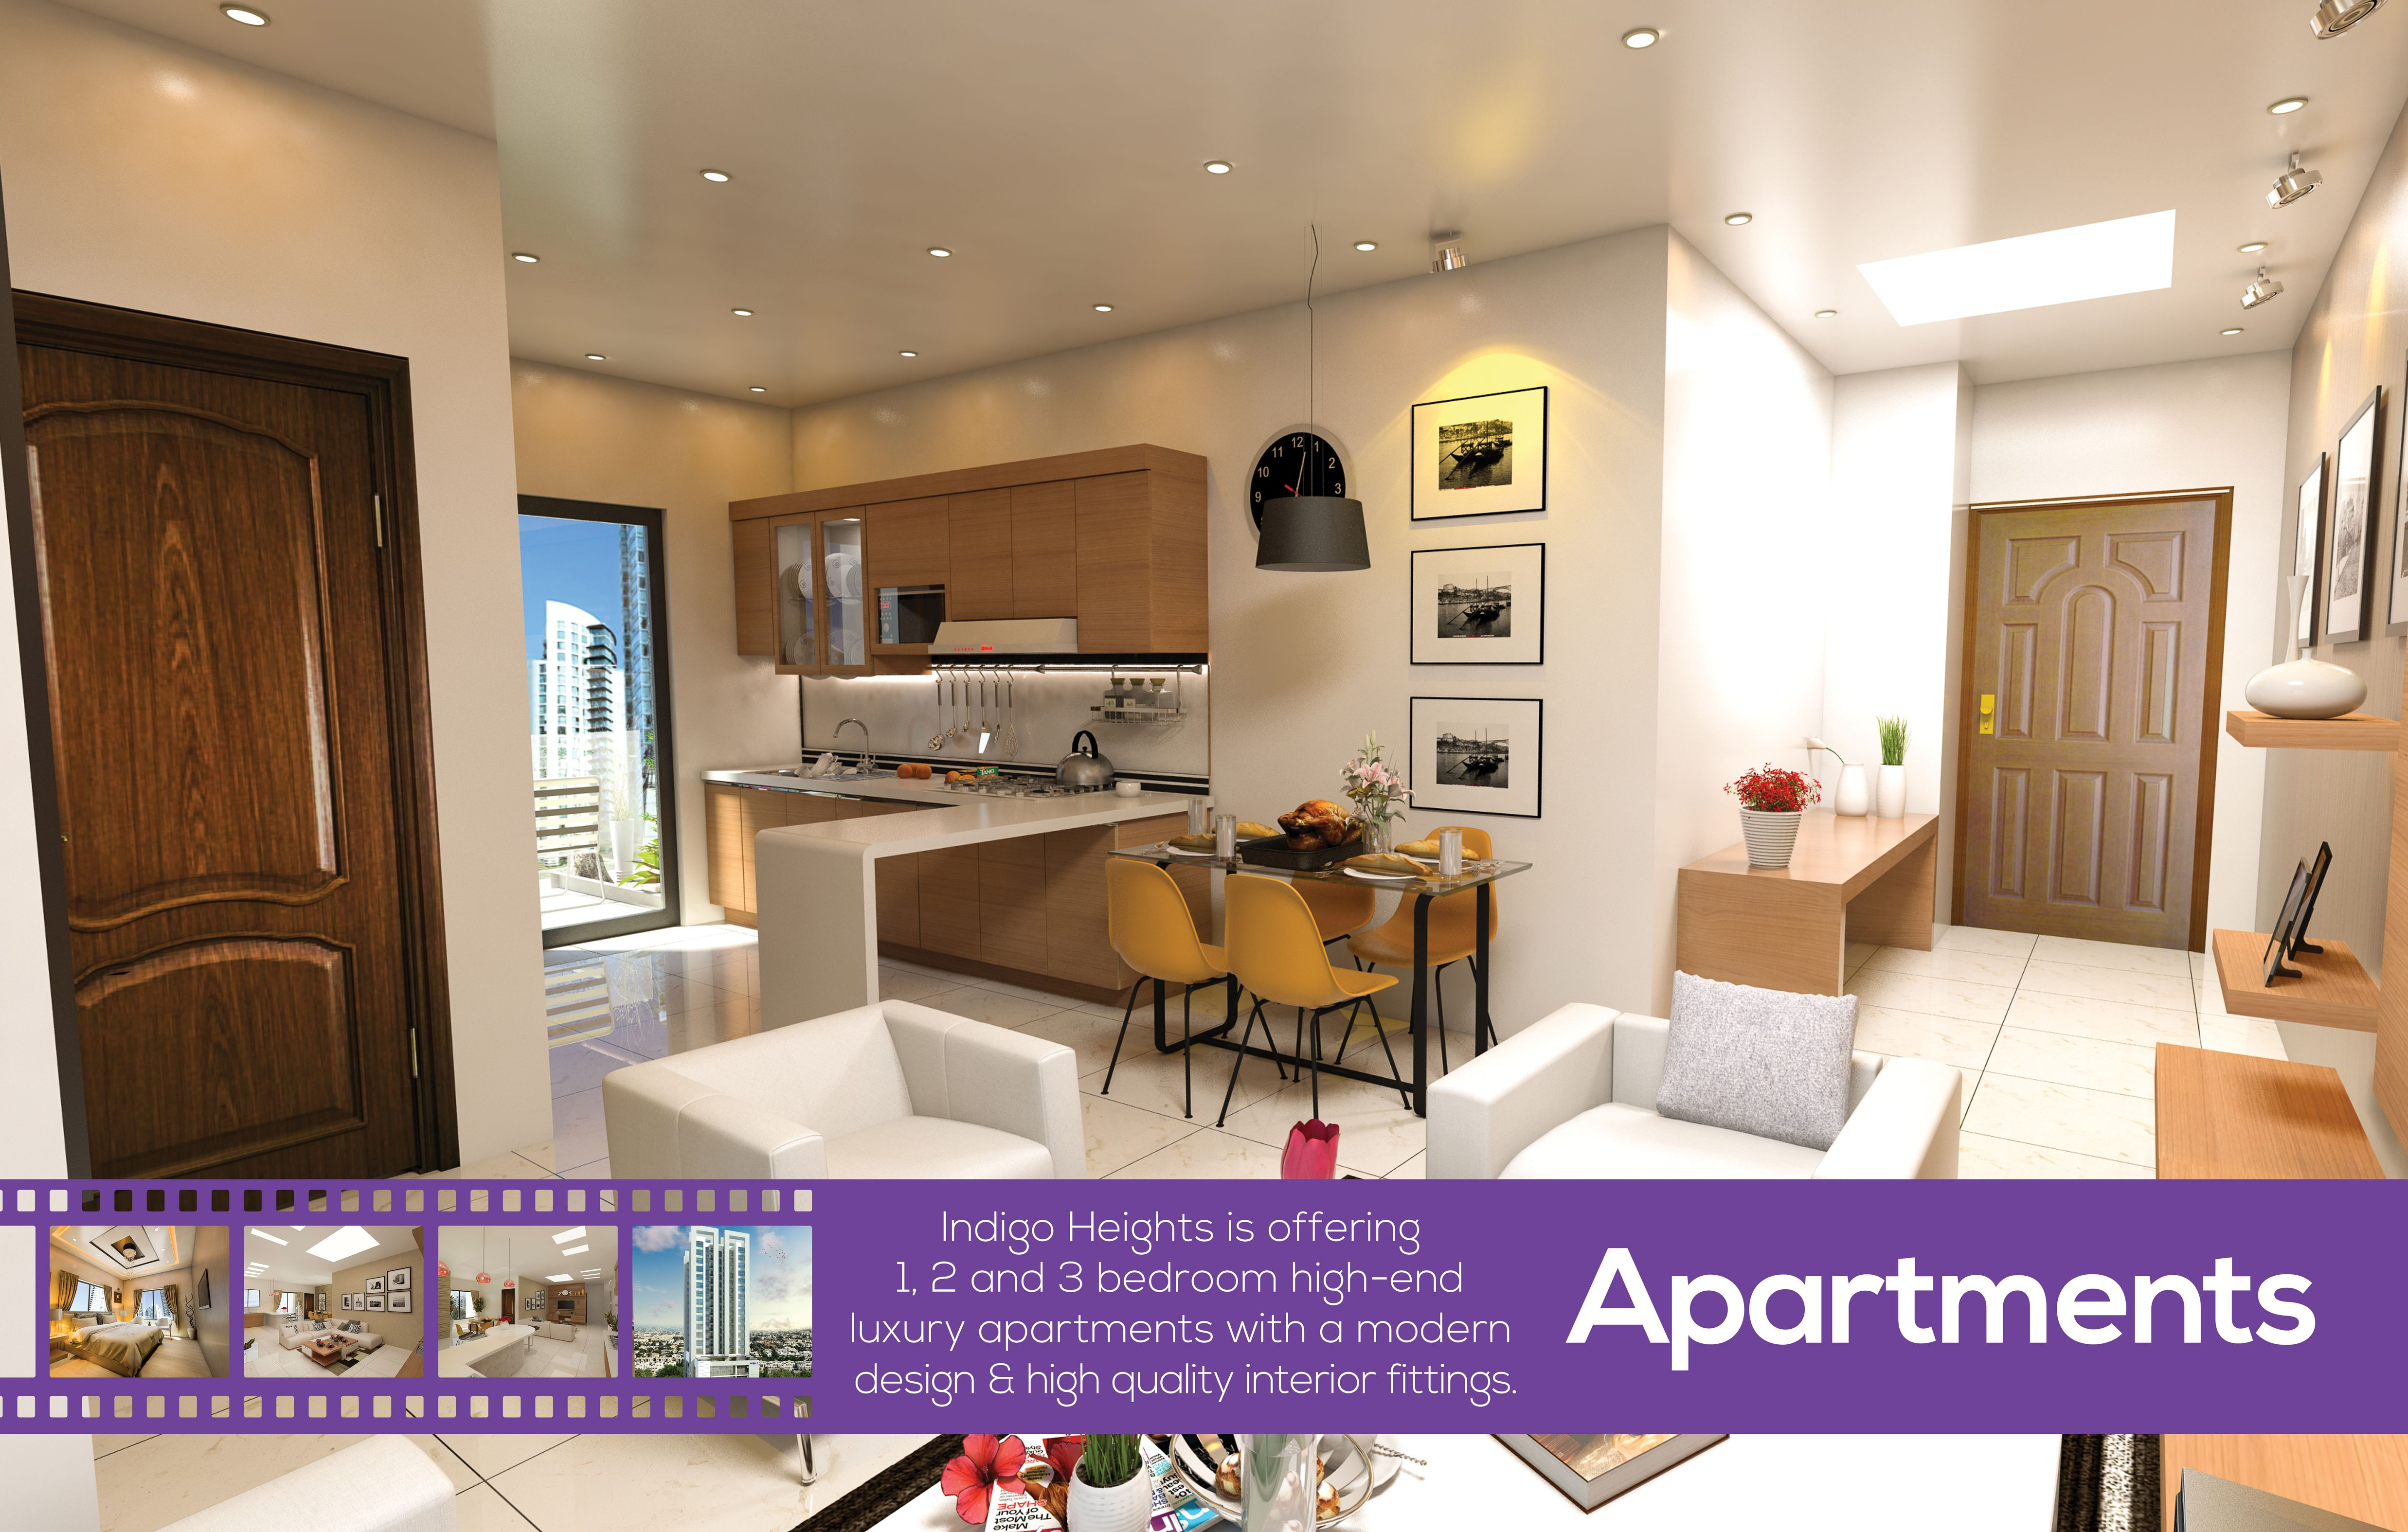 Luxury Apartments for sale on installment in Gulberg